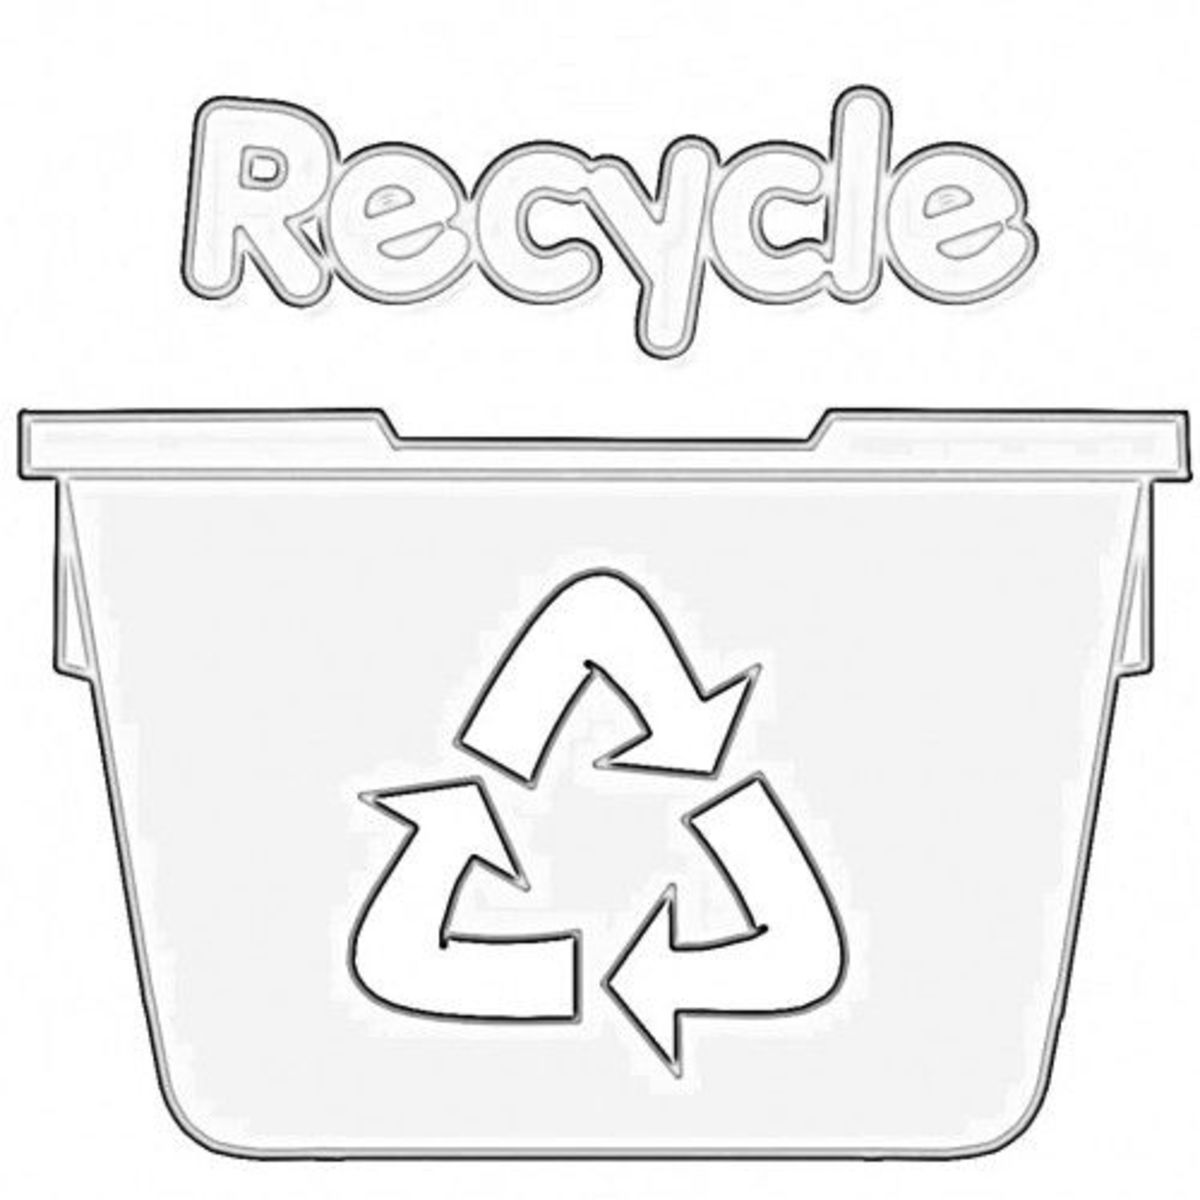 Printables Recycling For Kids Worksheets recycling worksheets for kids recycle bin coloring page